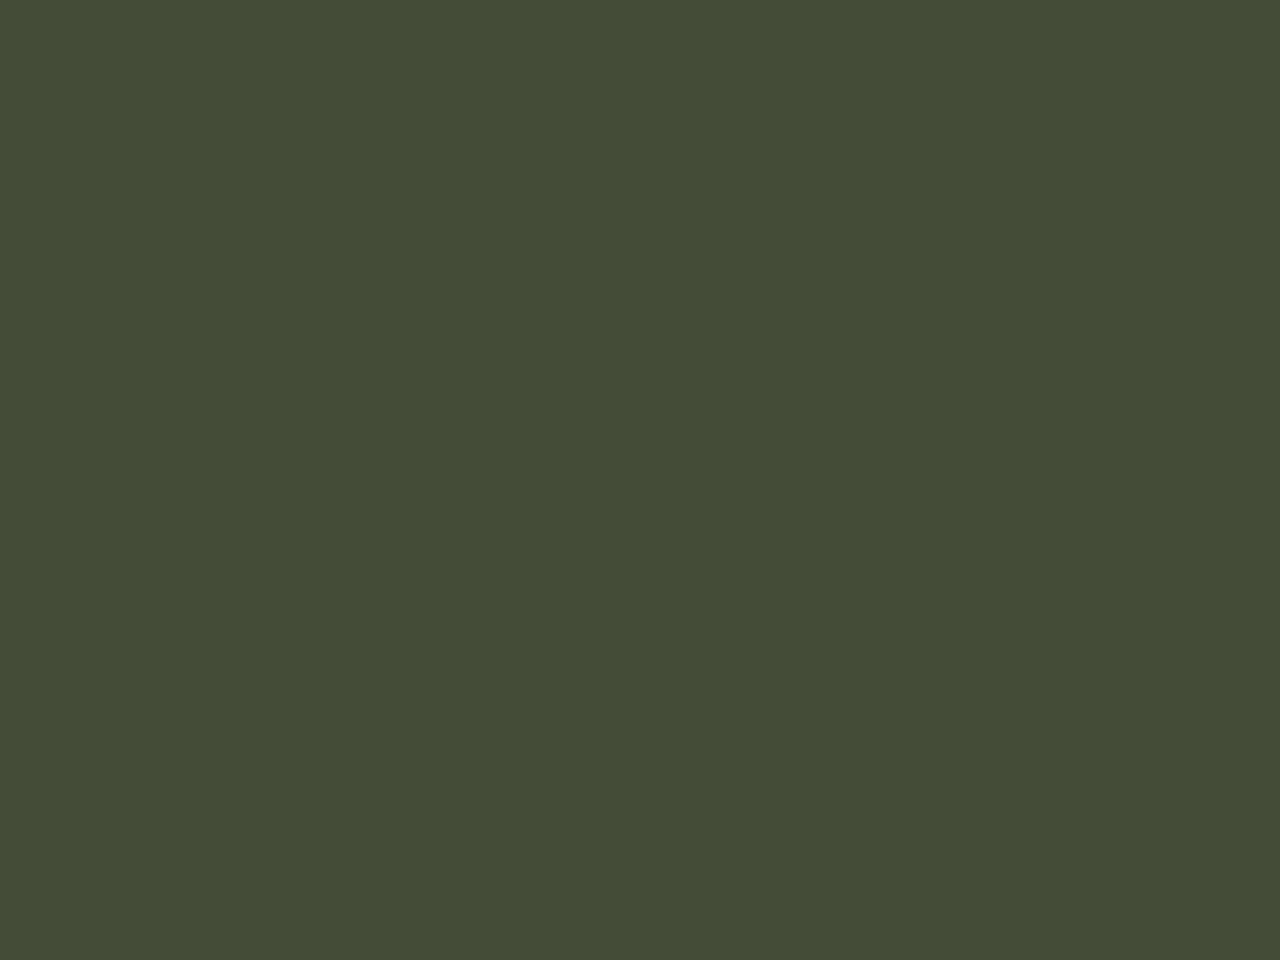 1280x960 Rifle Green Solid Color Background